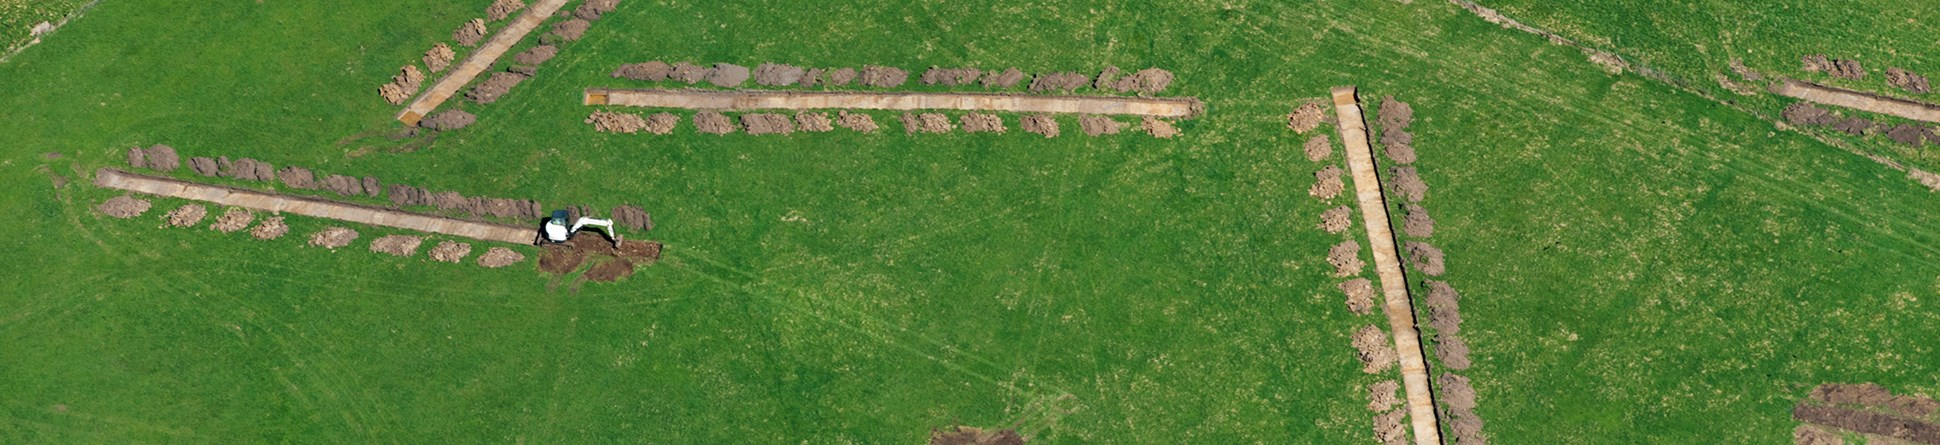 An aerial photograph of eight trial archaeological trenches in a green field.